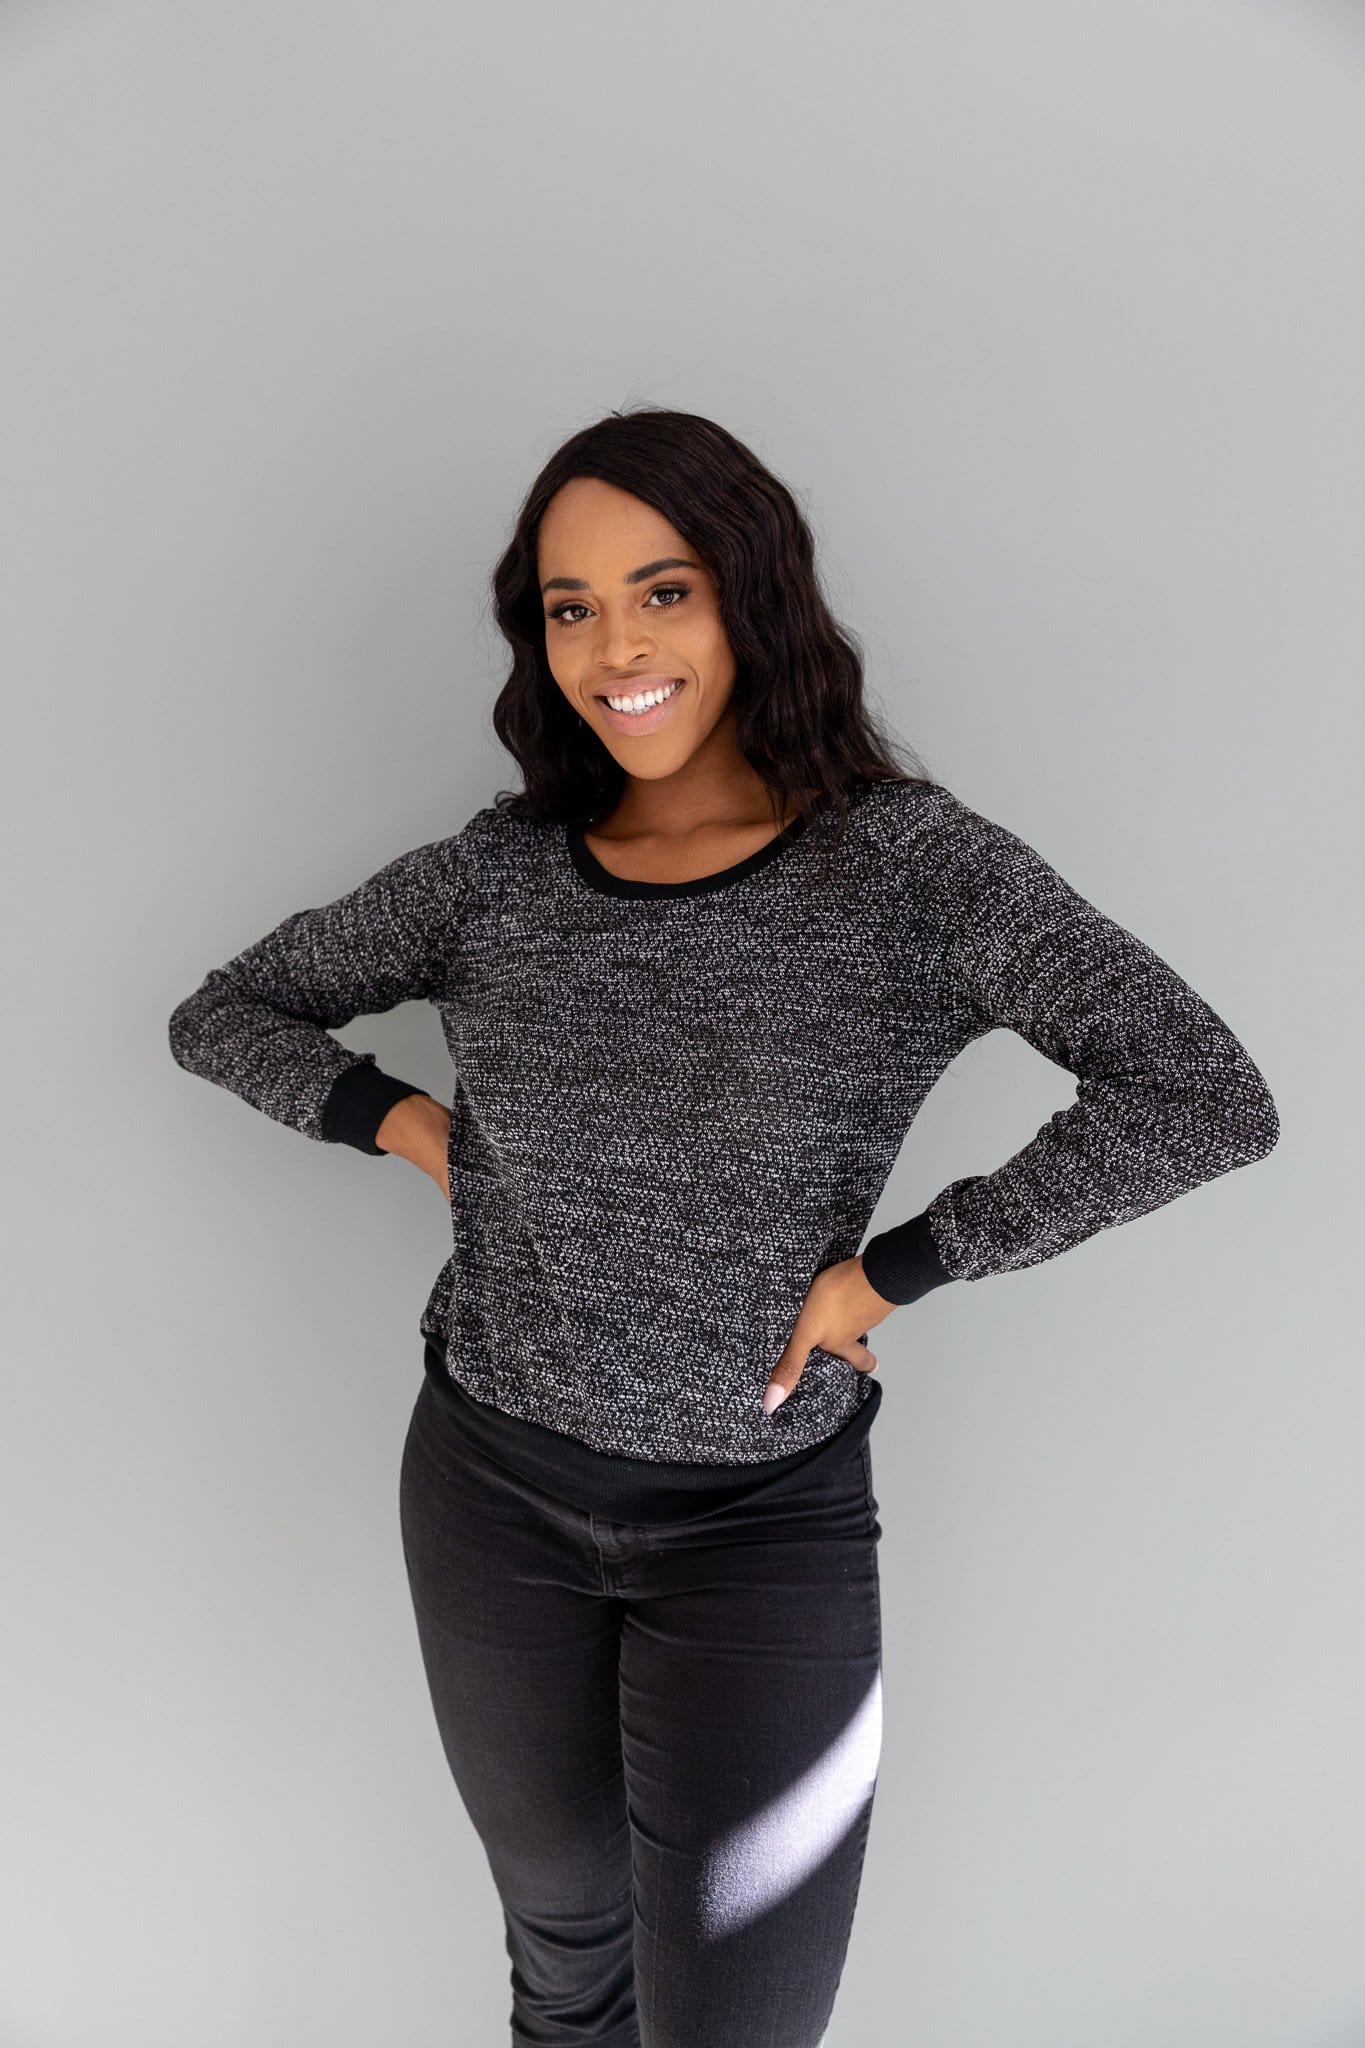 The Meagan Knit Sweater in Black